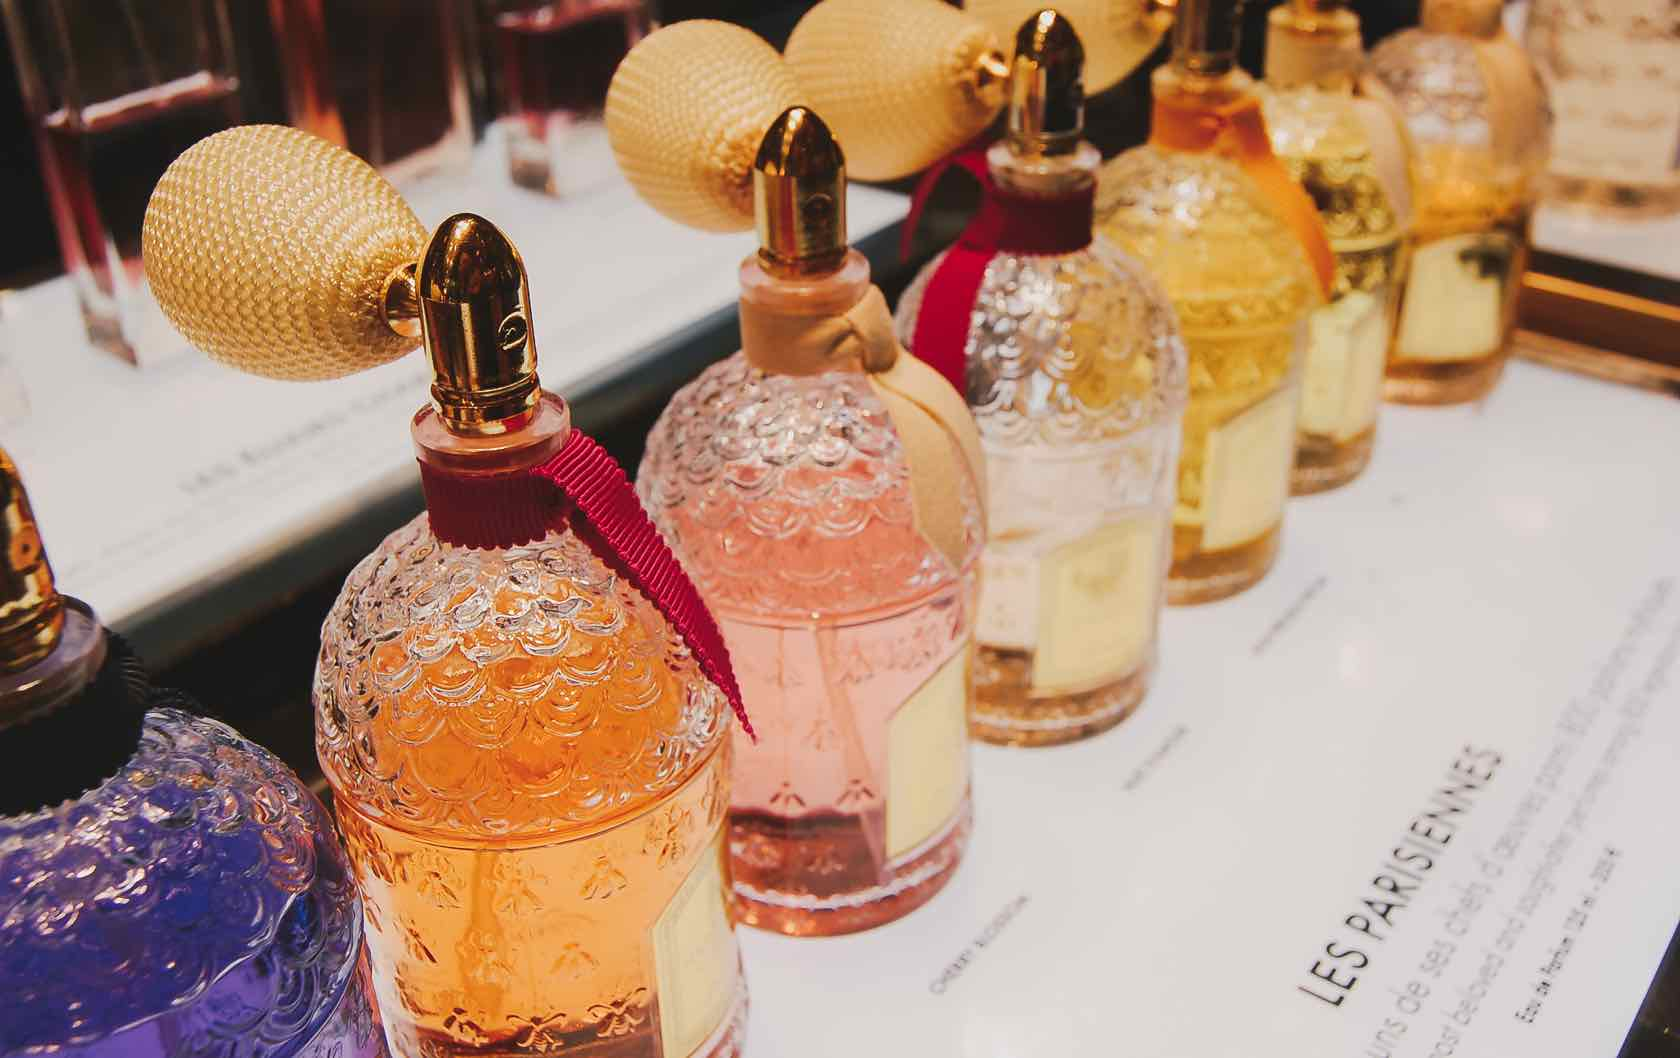 Bespoke Perfumes in Paris